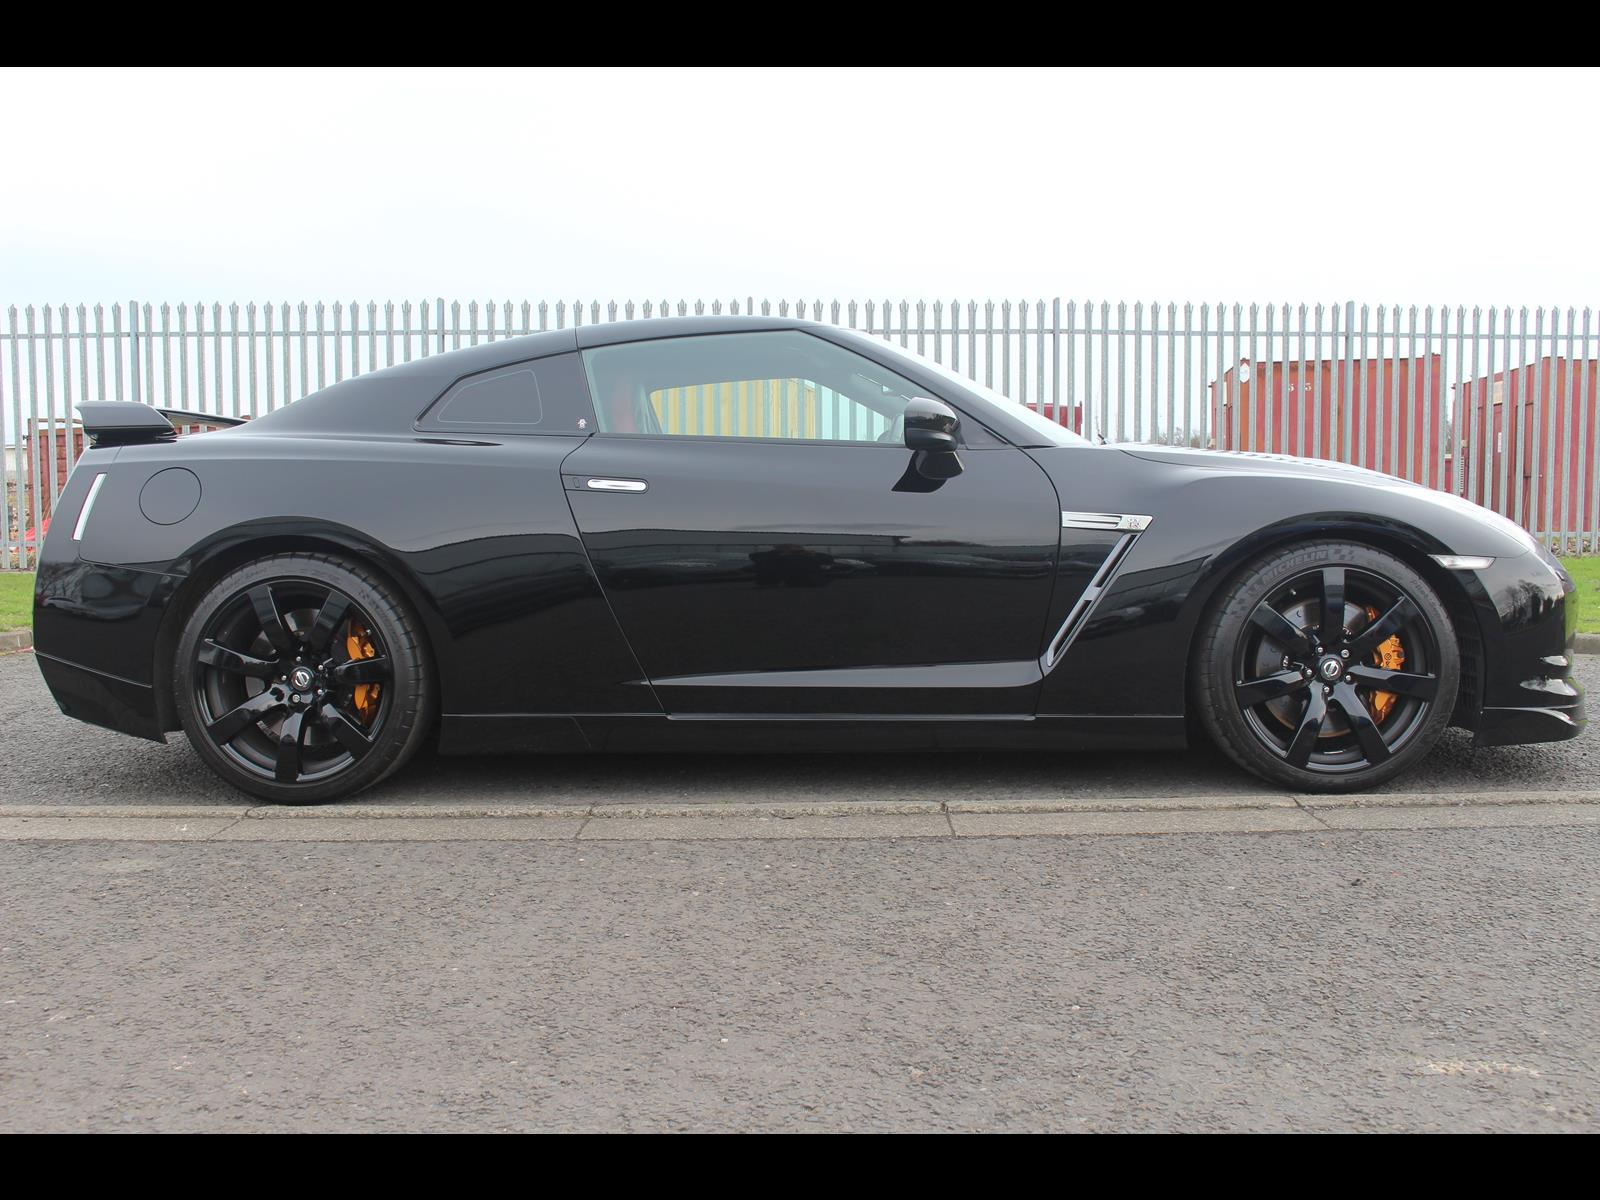 2009 Nissan Gtr For Sale >> 2009 Nissan R35 GTR UK Model Black Edition Stage 4 Tuned ...